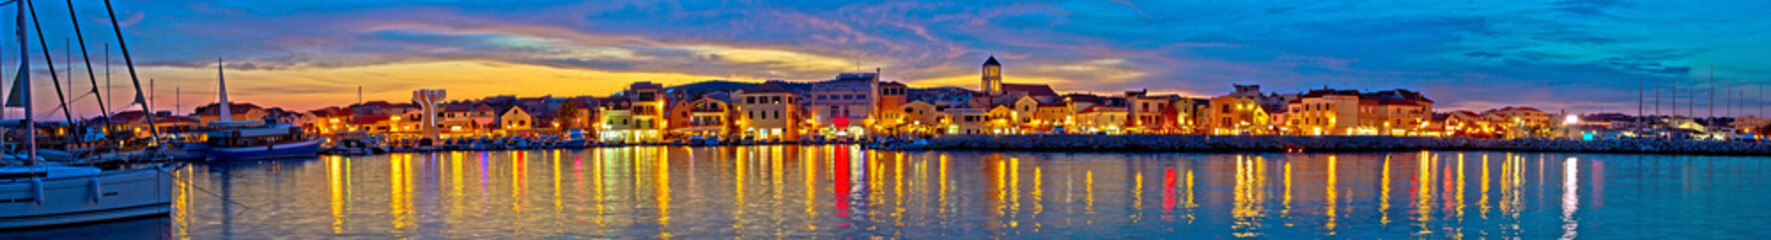 Vodice waterfront colorfu evening panorama